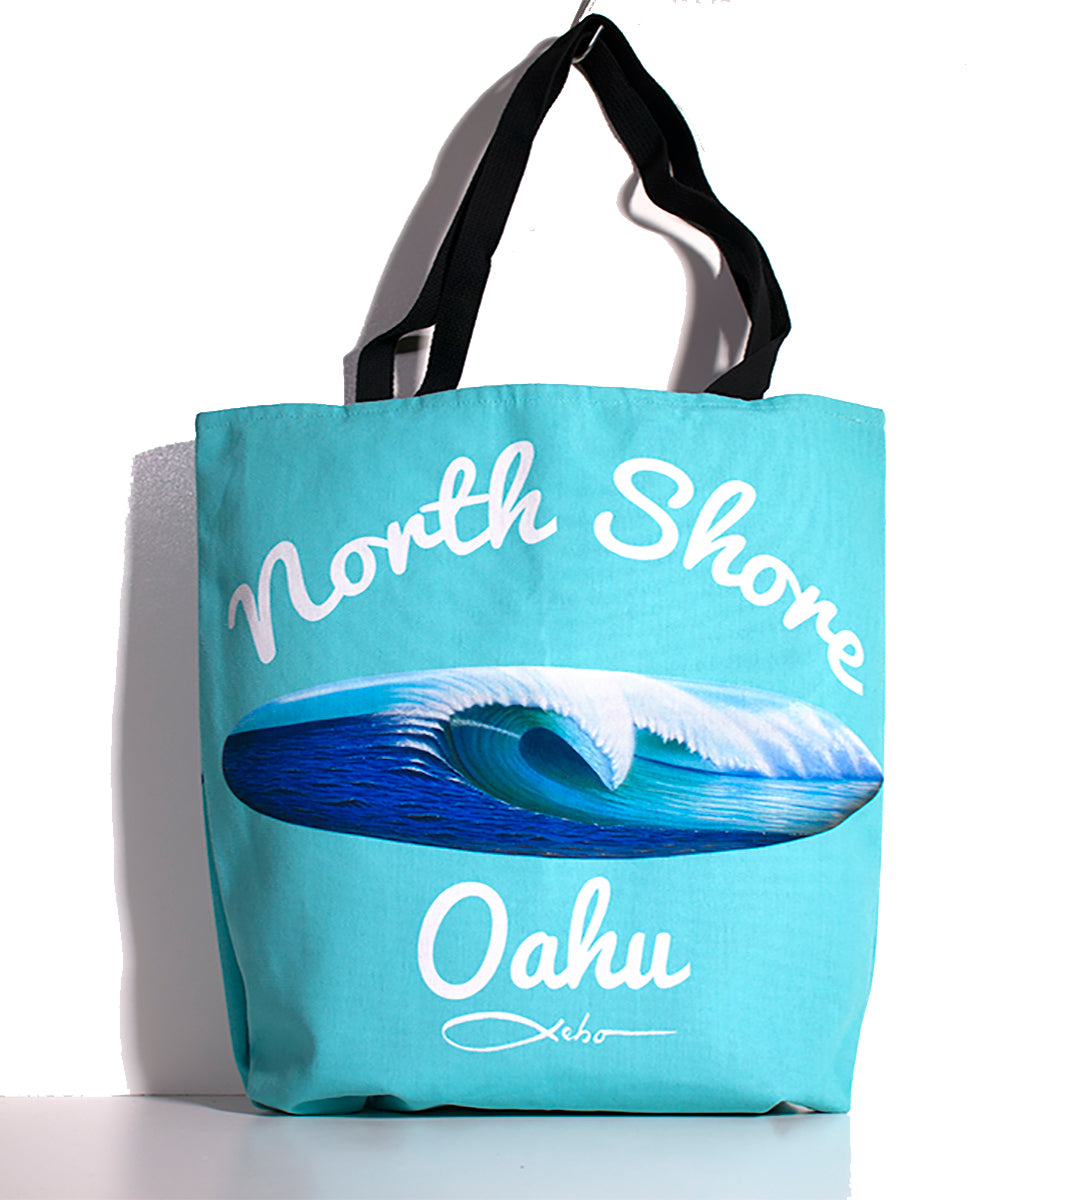 """North Shore Oahu"" Tote Bag"